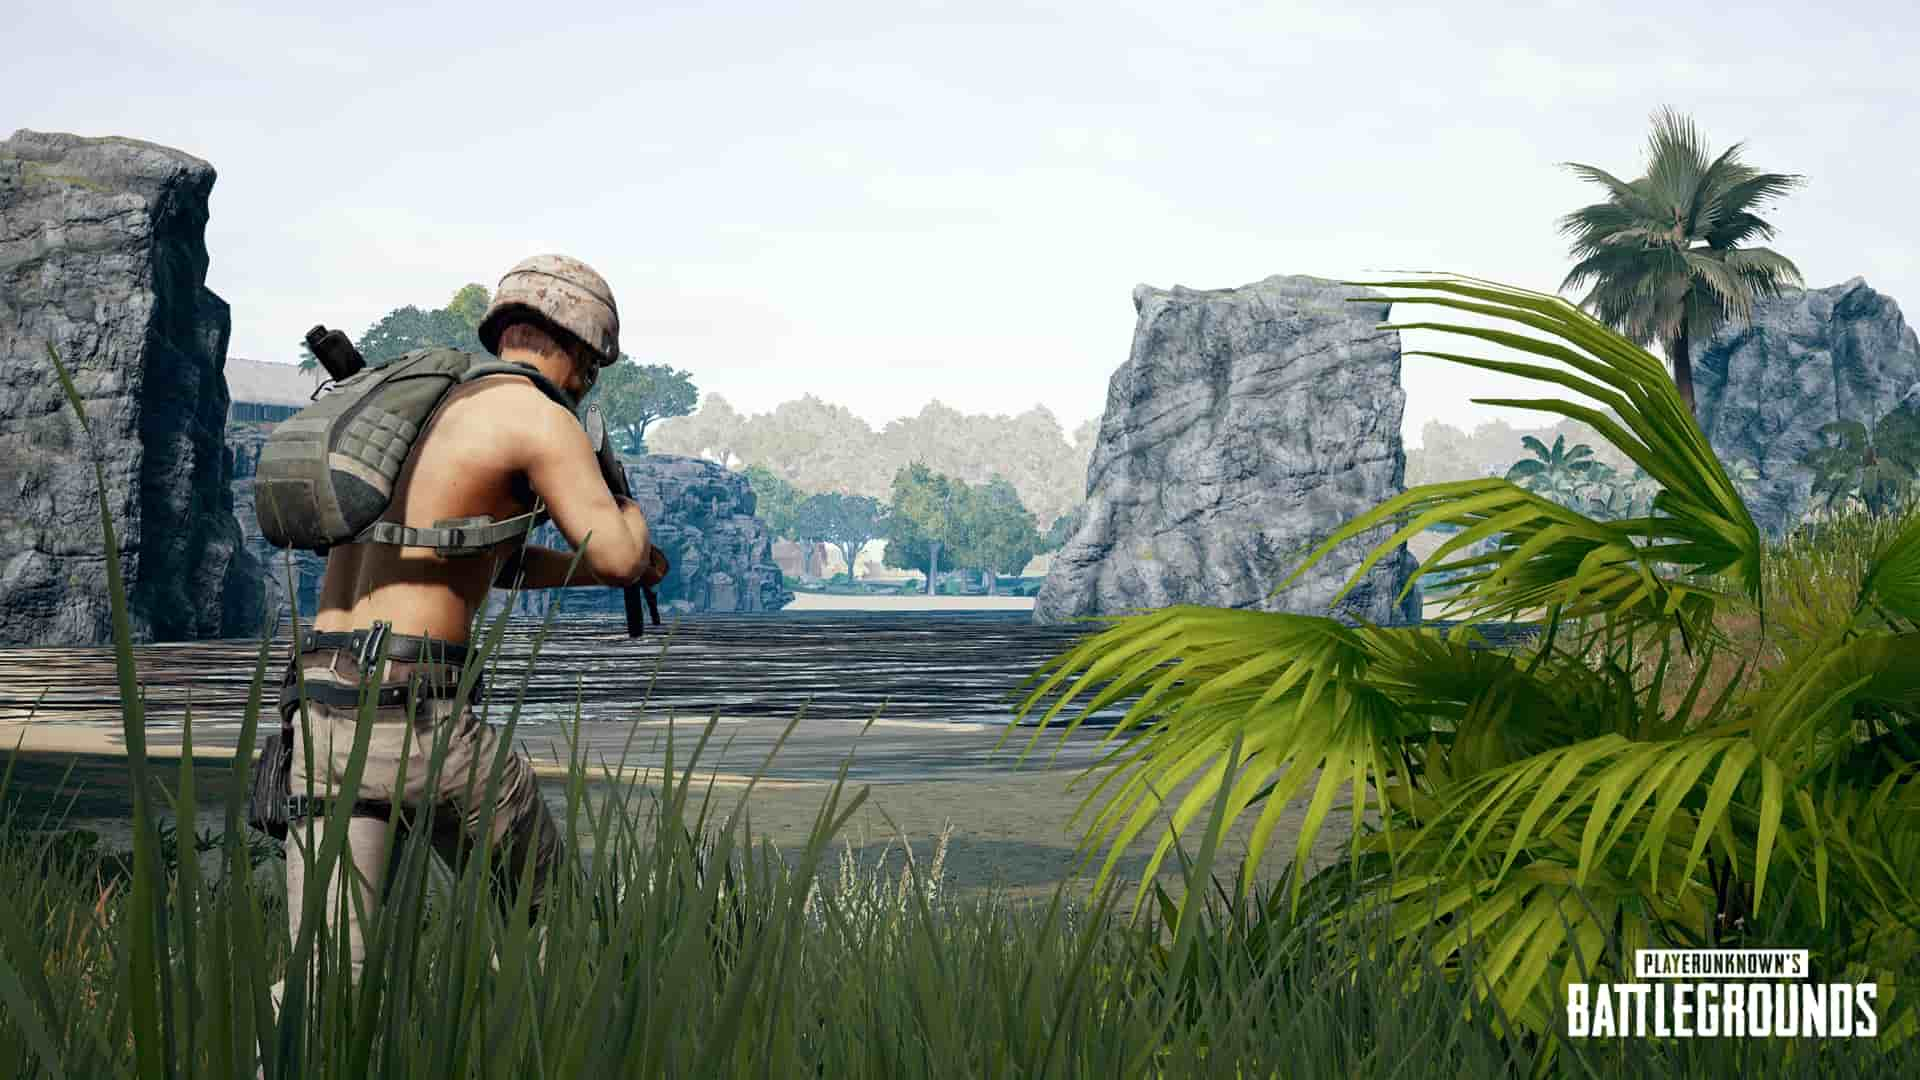 PUBG Experimental Server Update: Apple Throwing, Item Spawn Balance & More